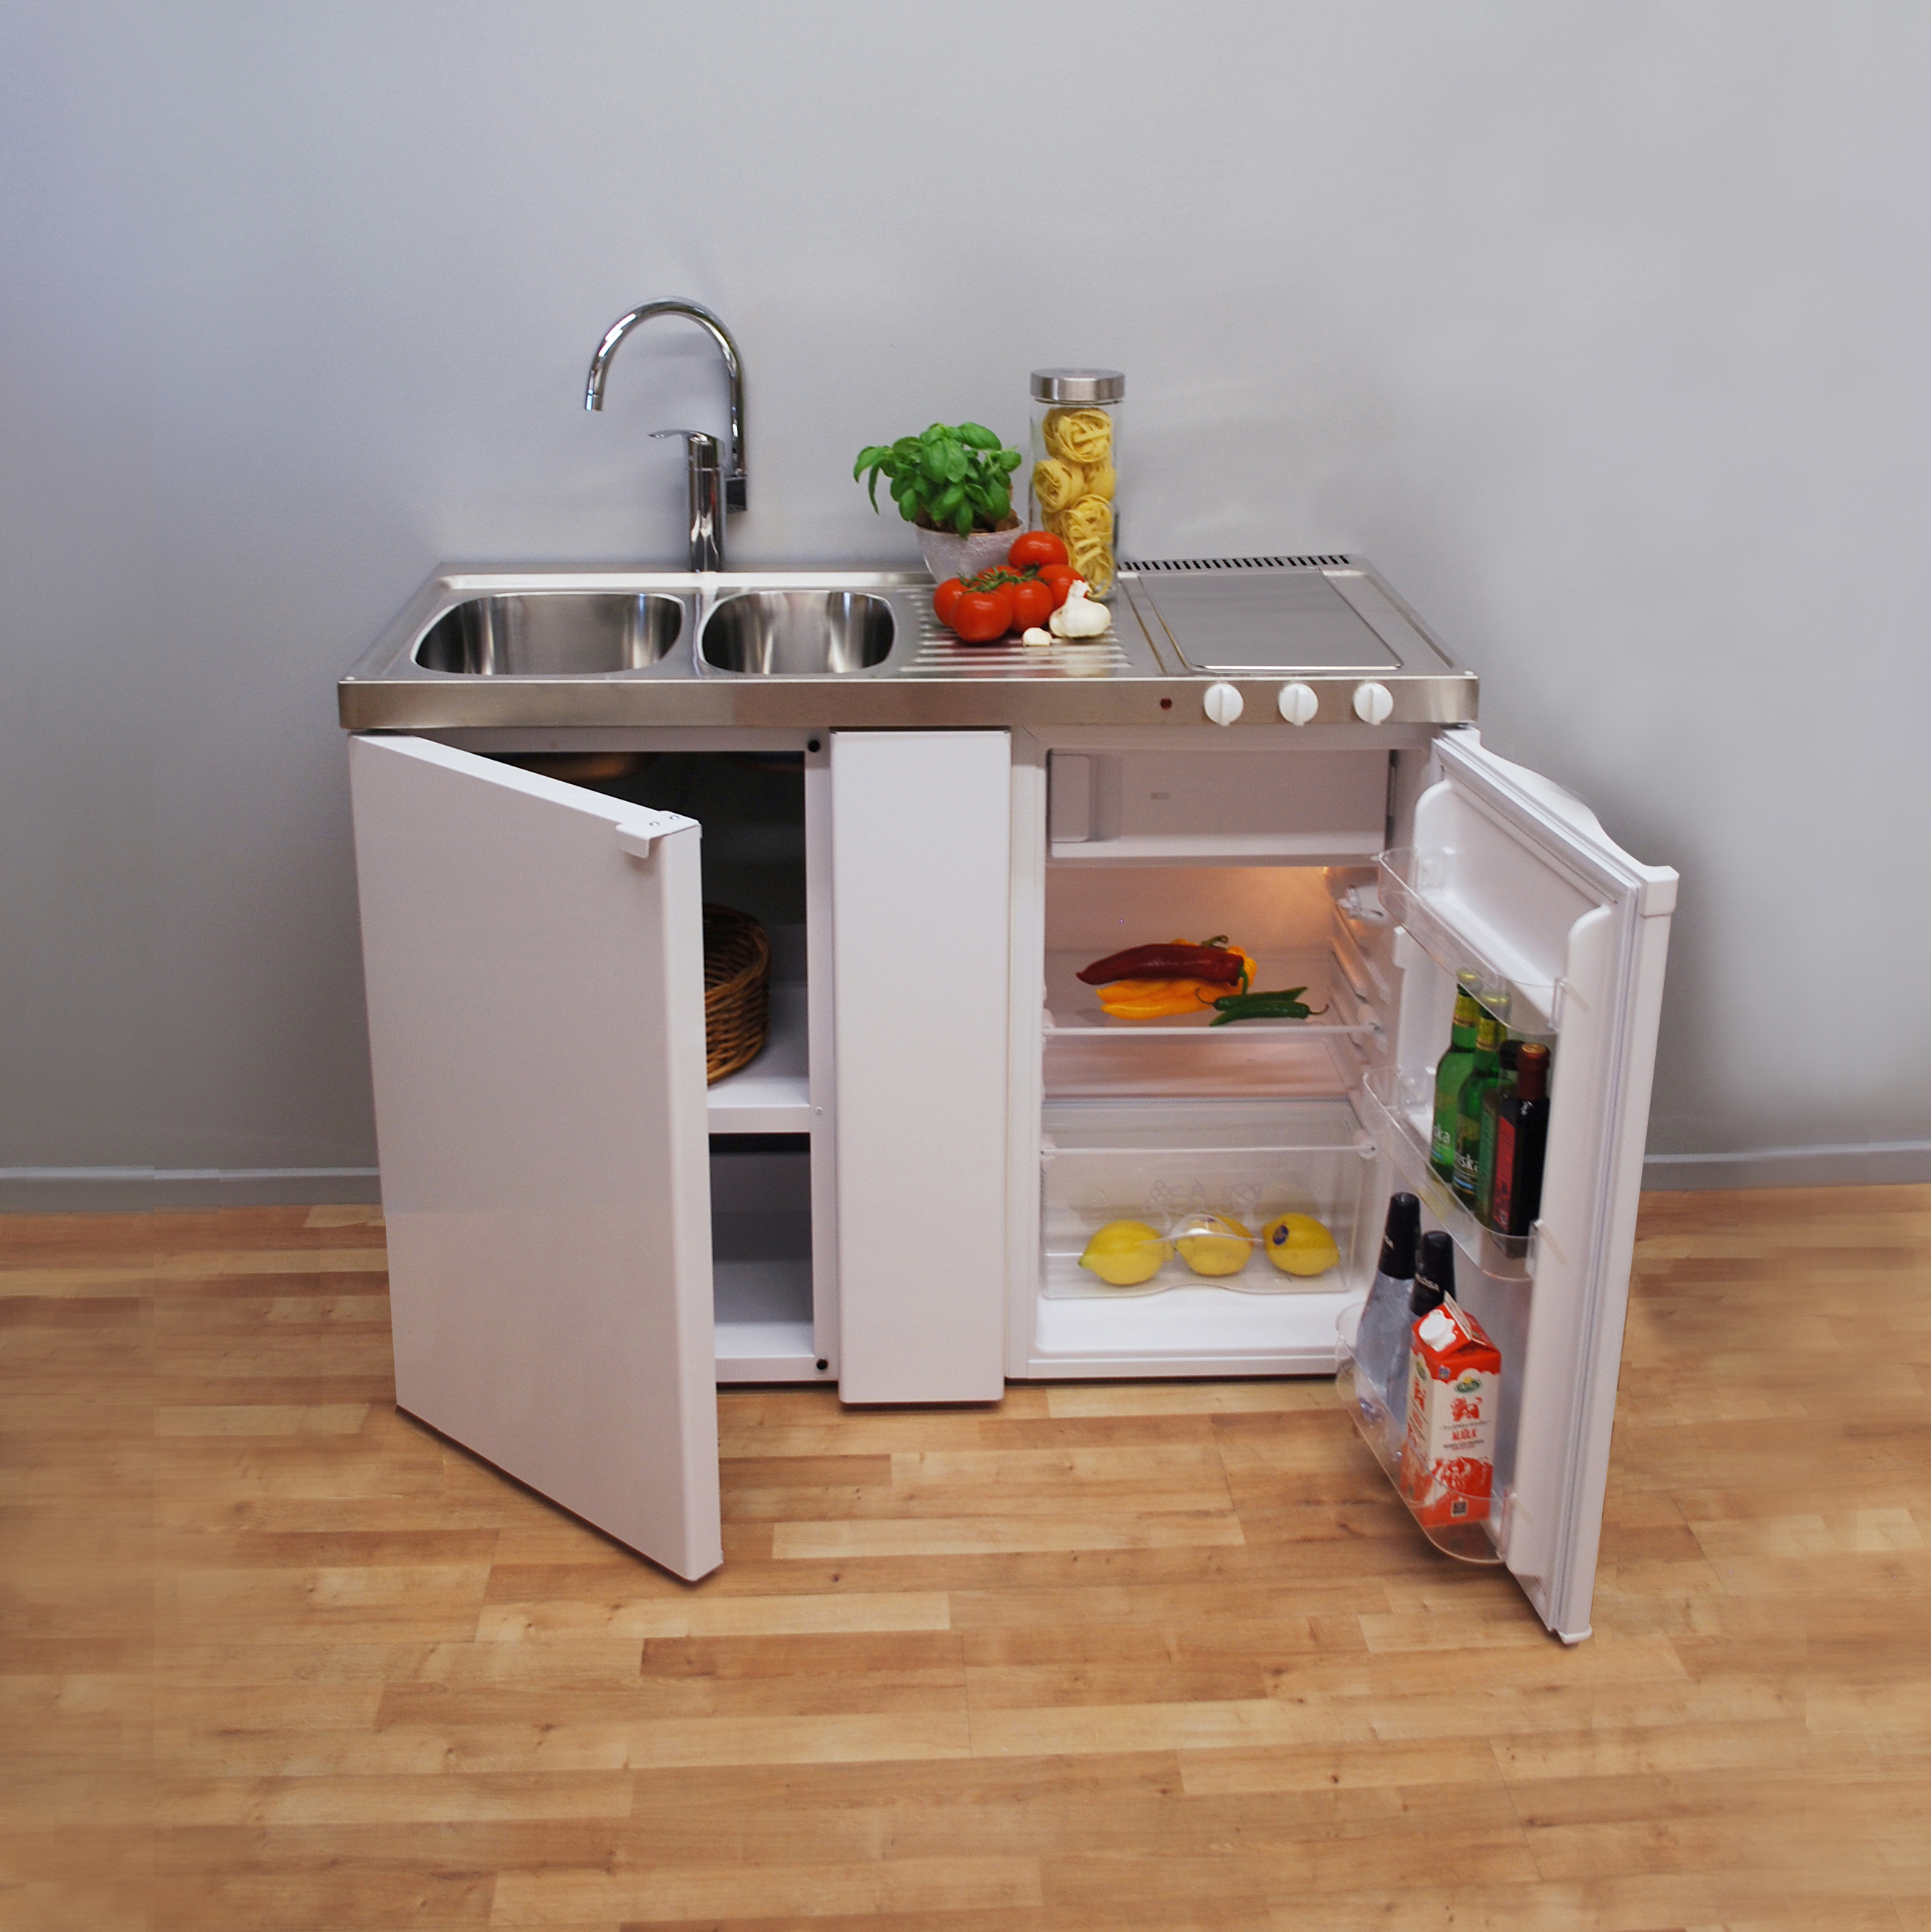 SALE OFFER! EMK 1260 1.2 metre wide MK Mini Kitchen (no hob) - compact and  ready-to-use